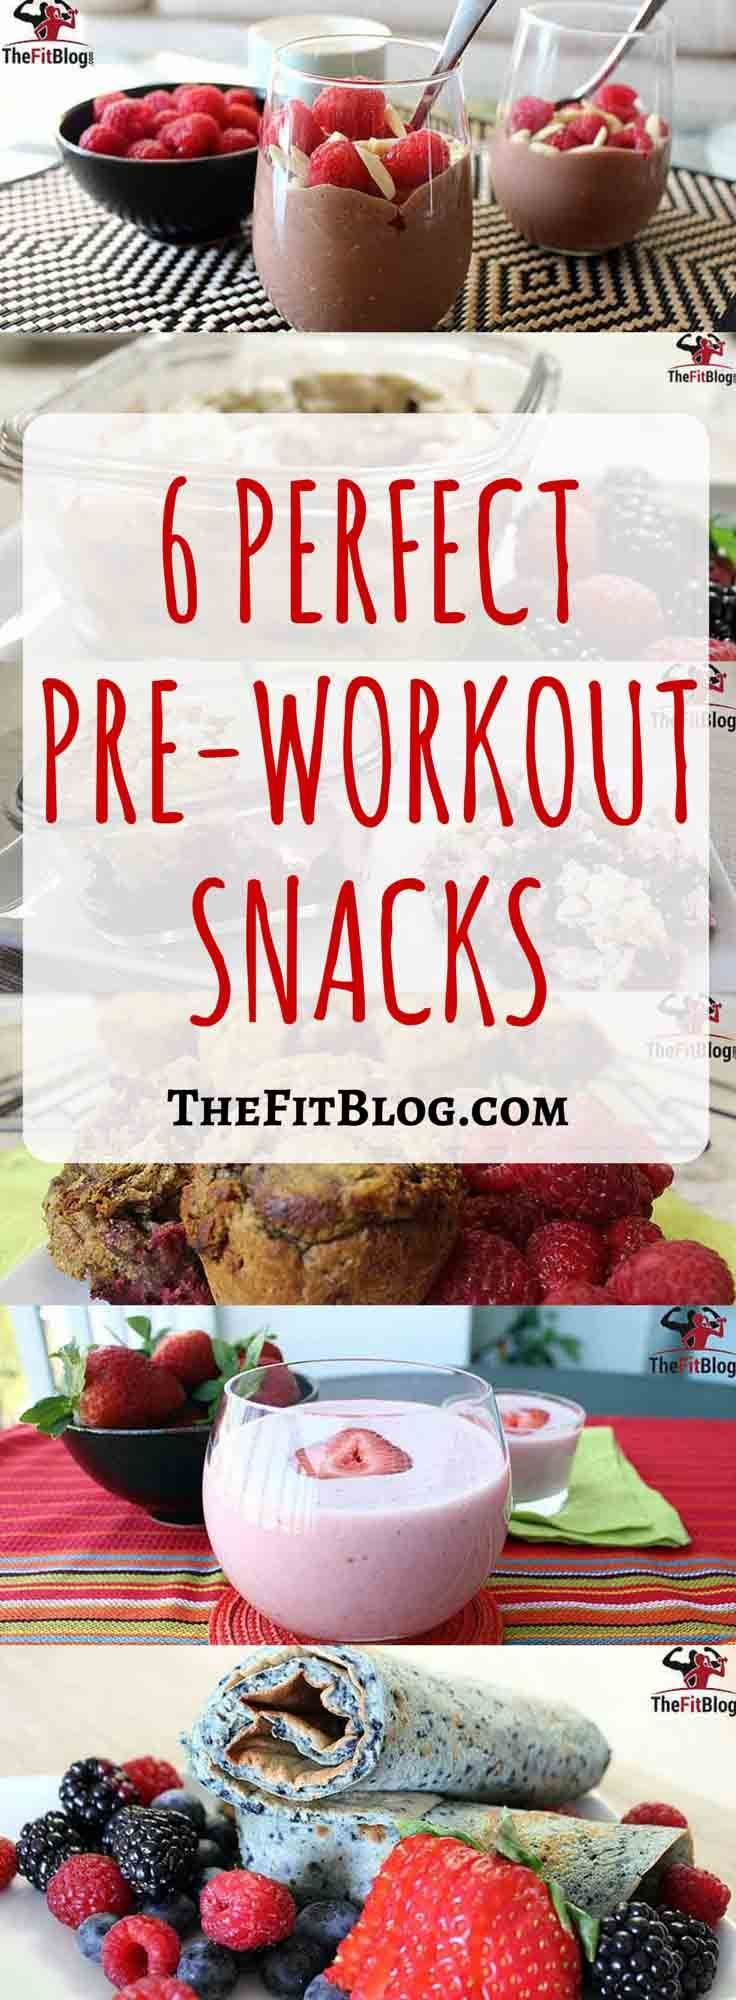 Learn what you should eat before your workouts and get six delicious recipes for the perfect pre-workout snacks and shakes.